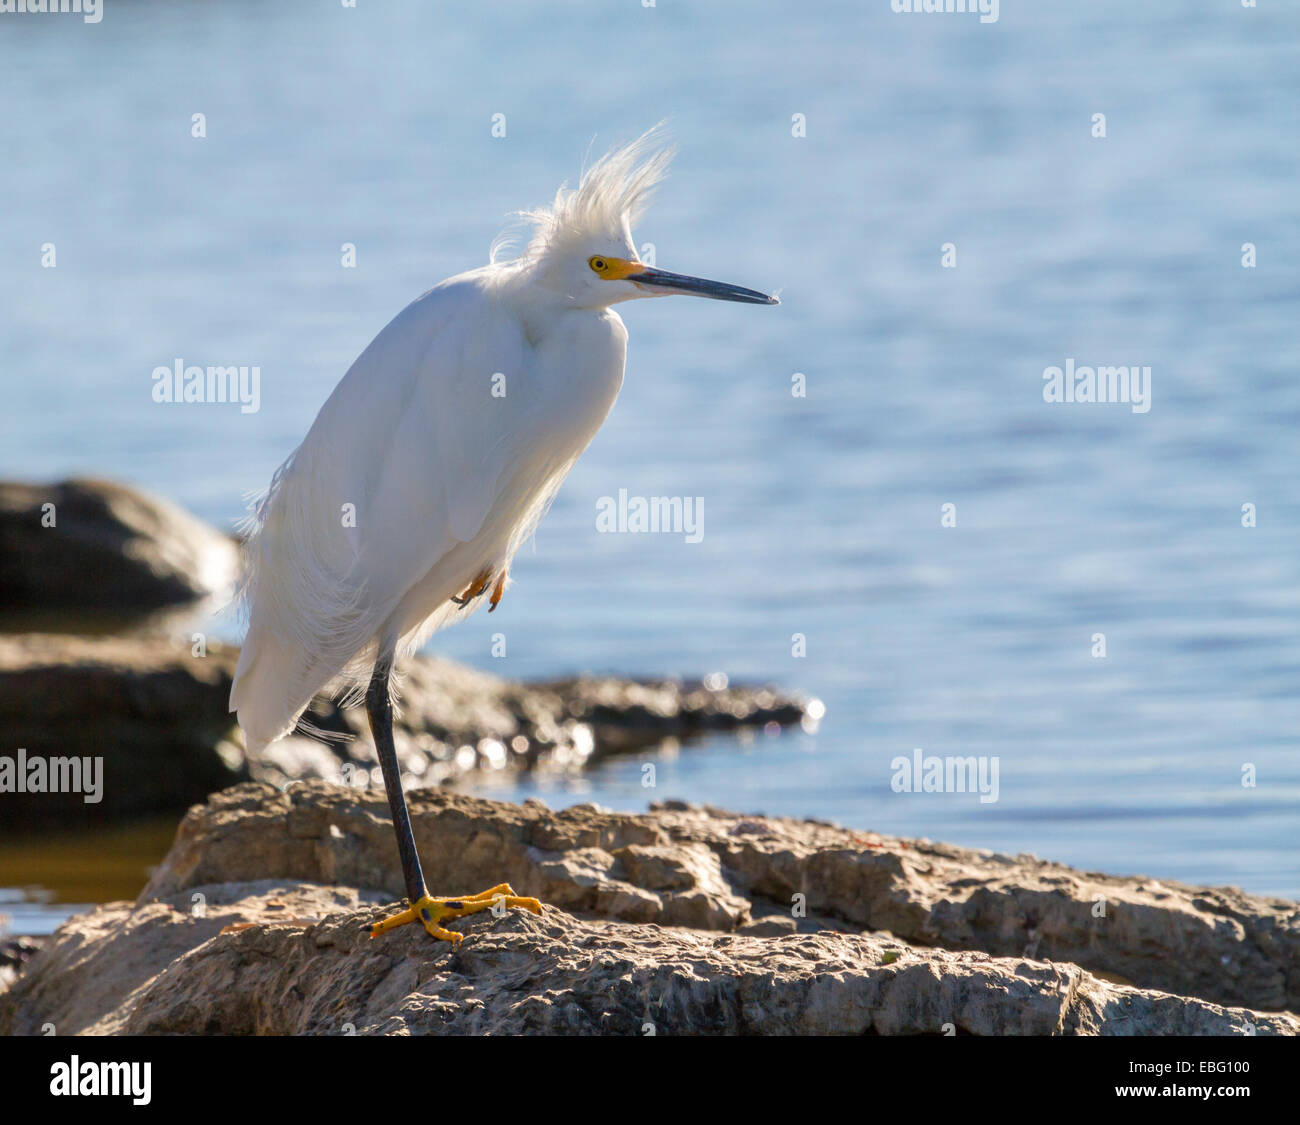 Snowy egret (Egretta thula) at a windy day, Galveston, Texas, USA - Stock Image